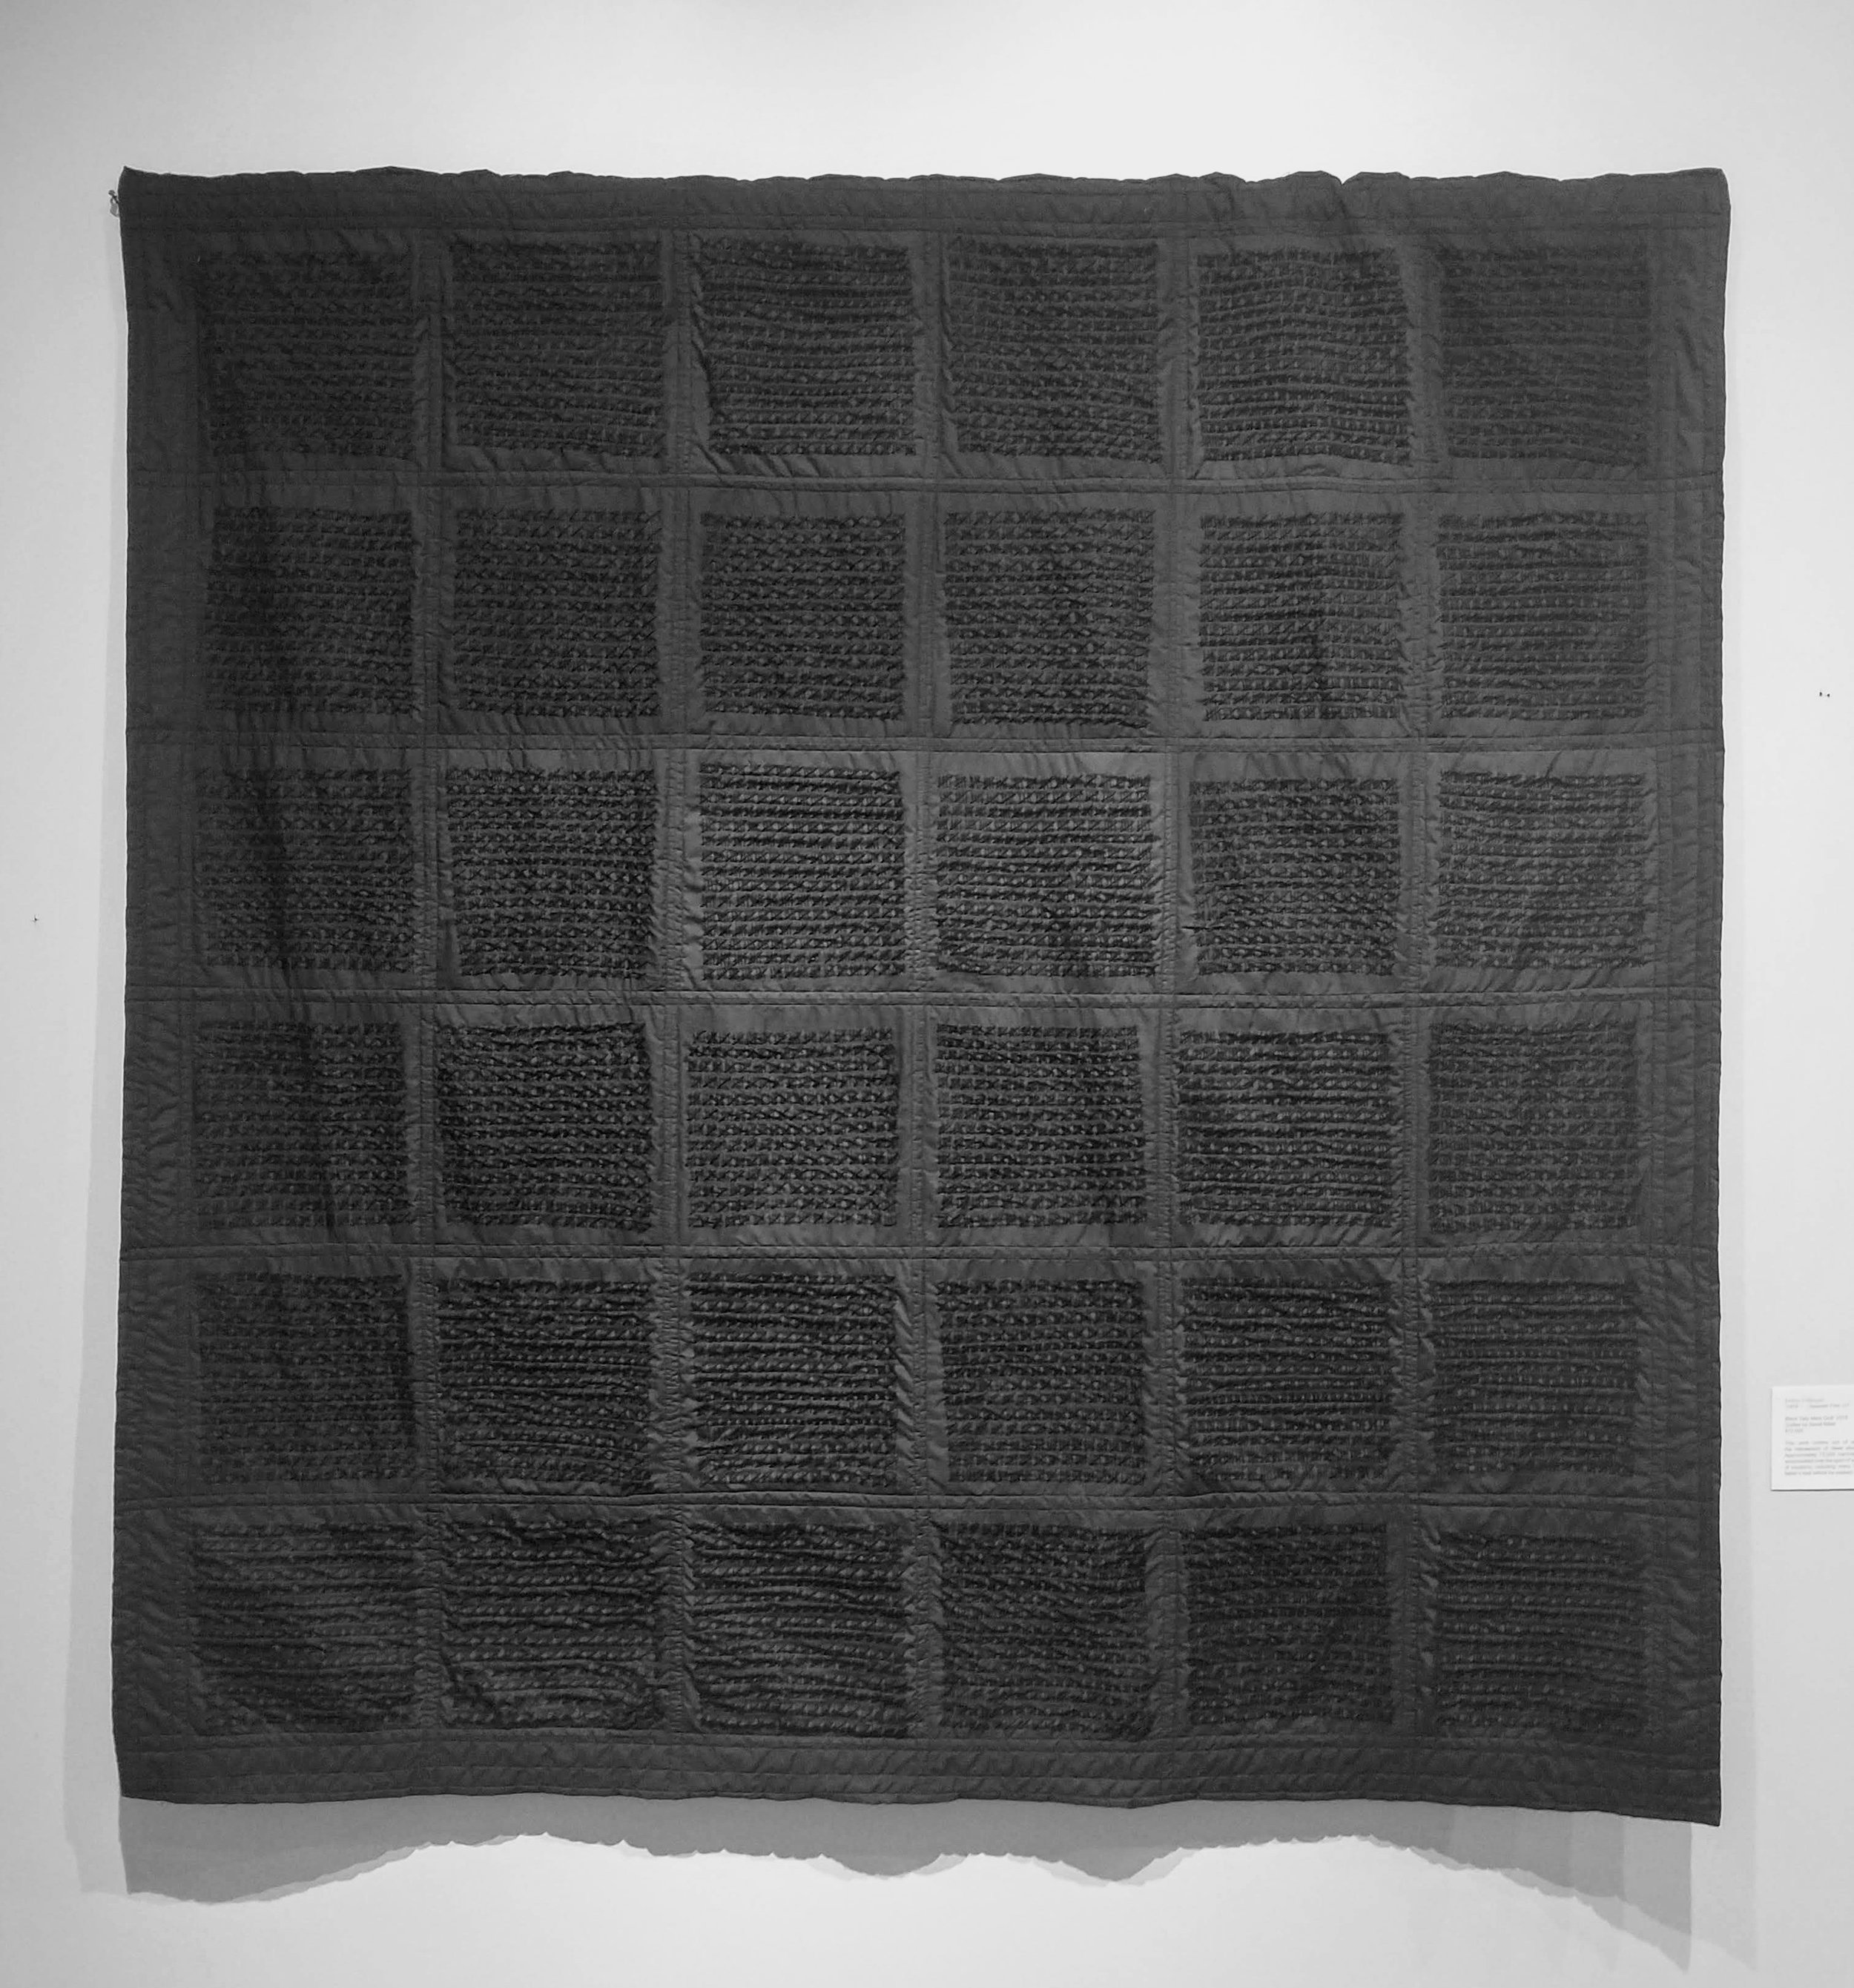 "Black tally mark quilt. Crochet thread on muslin, approximately 75,000 hand stitched tally marks. 72""x 72"""